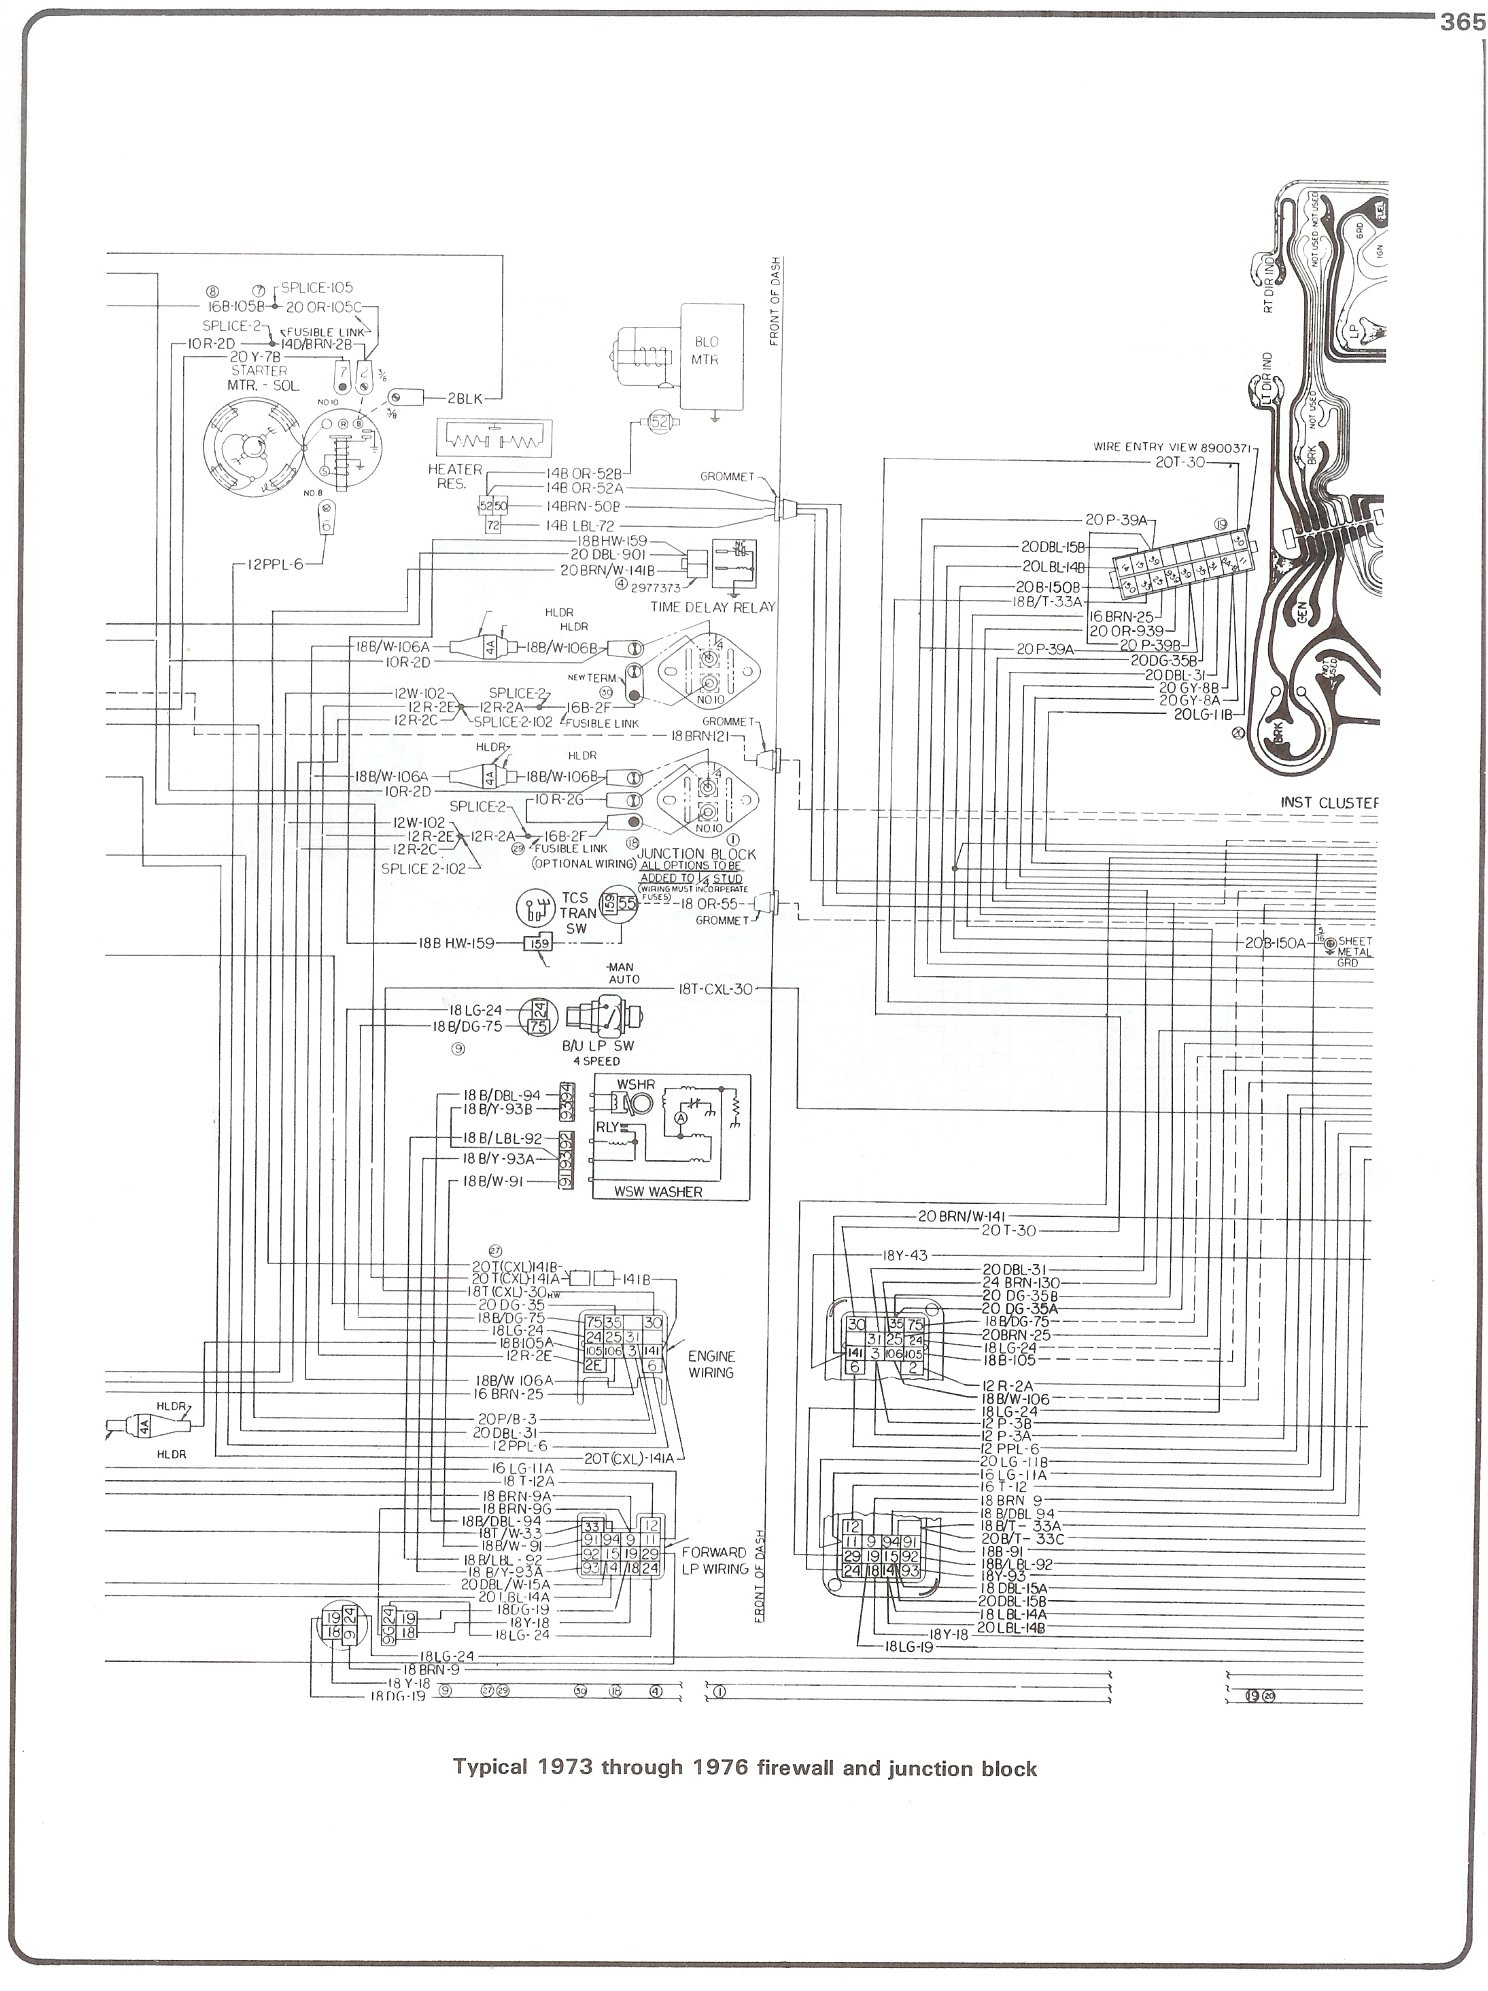 Plete 7387 Wiring Diagrams. 7376 Firewall Junction. Chevrolet. 93 Chevy K1500 Engine Diagram At Scoala.co